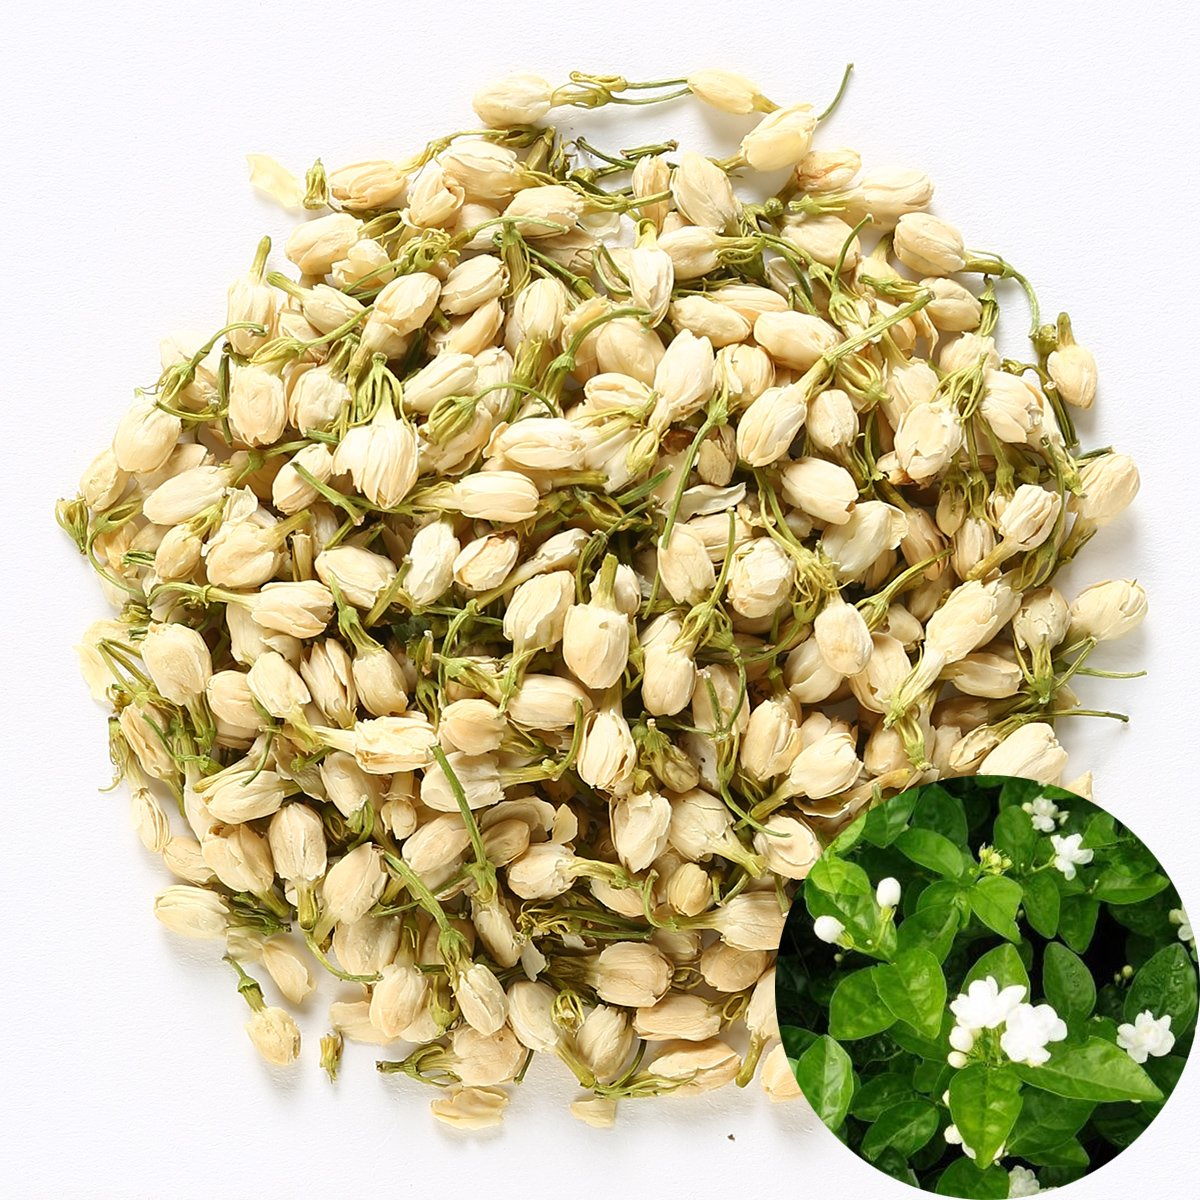 Amazon Tooget Fragrant Natural Pure Jasmine Buds Organic Dried